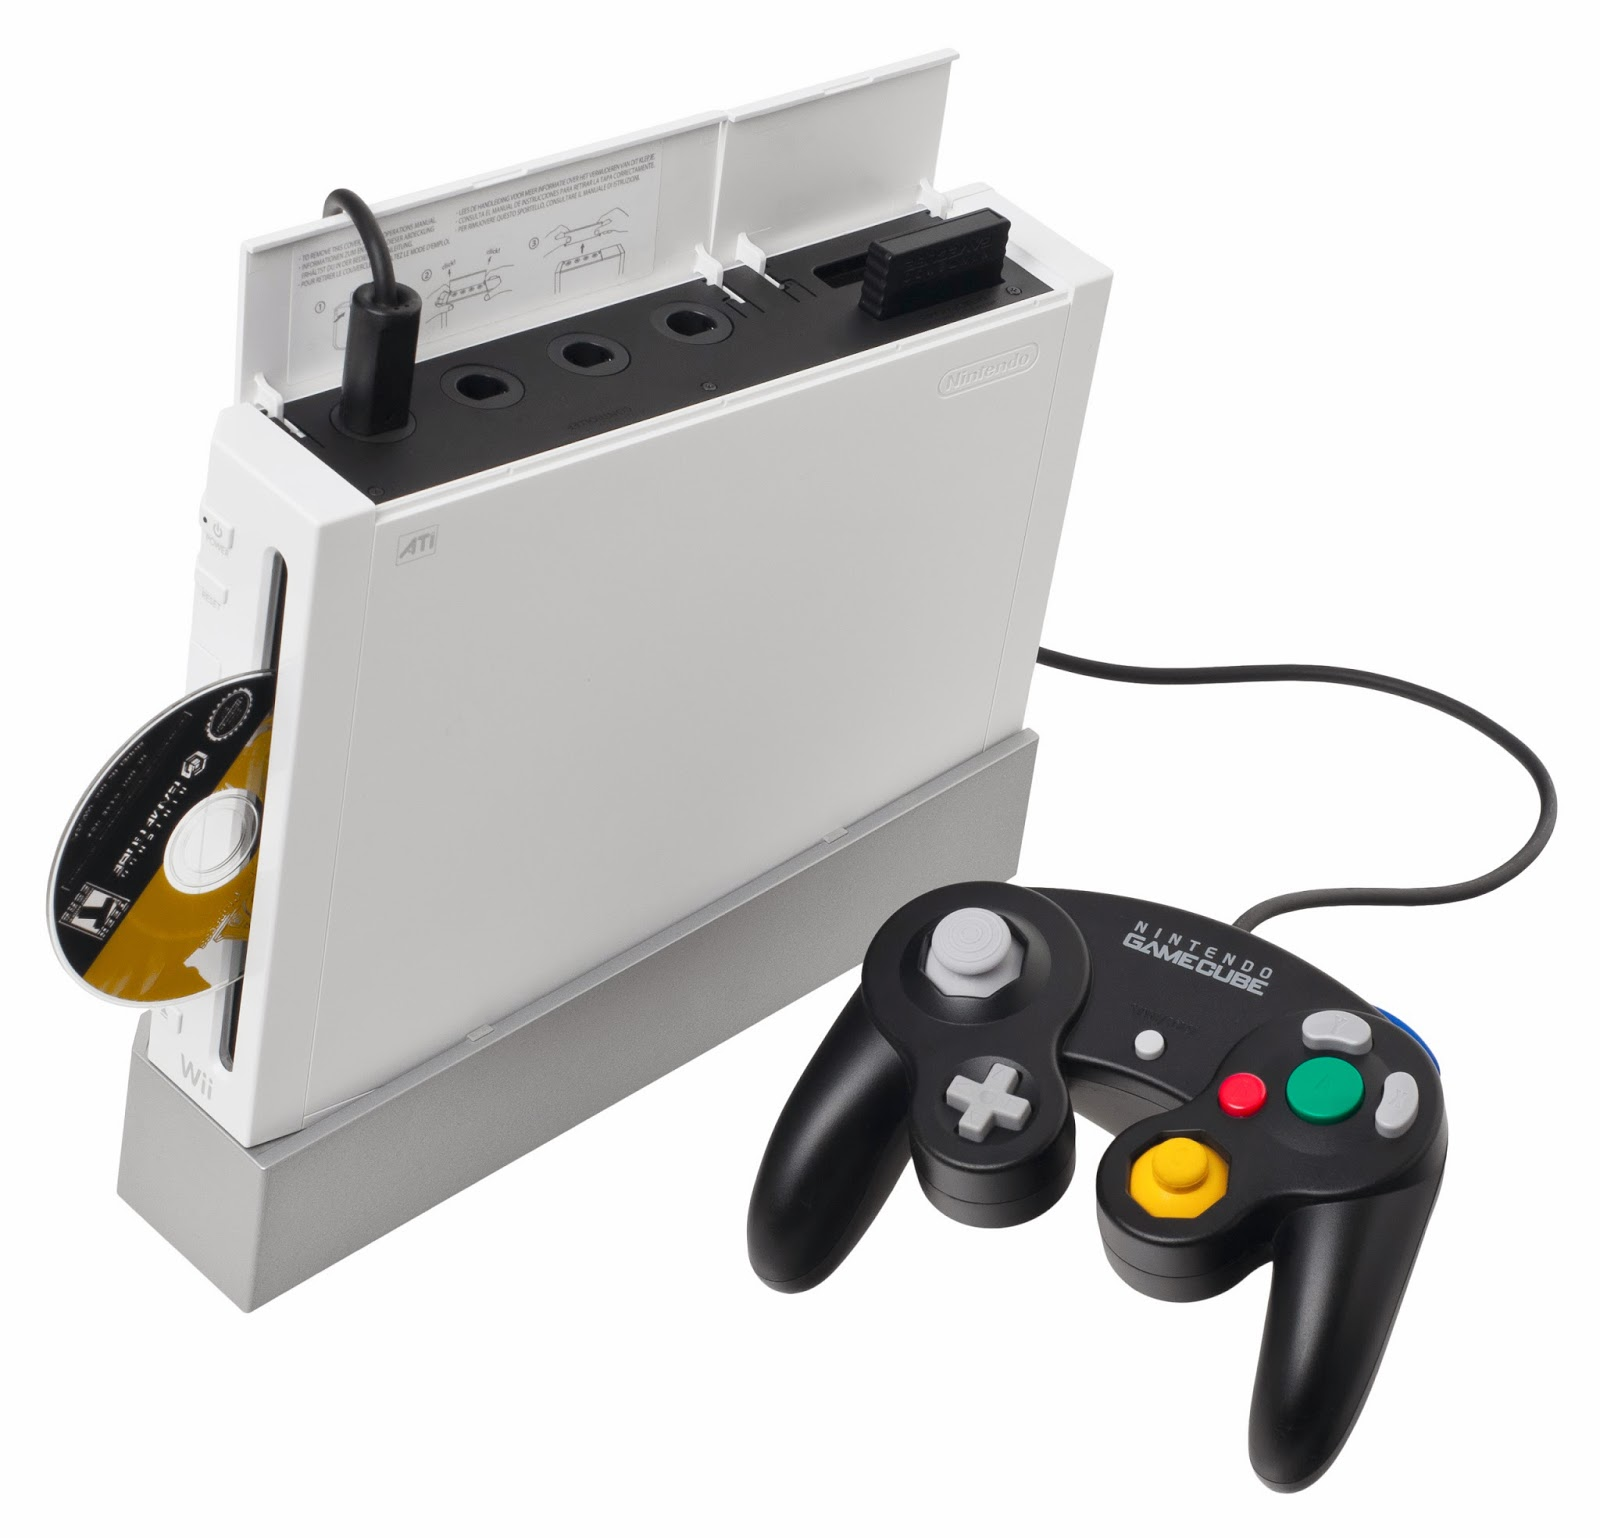 You Can Use An Old GameCube Memory With Your Nintendo Wii Console As It Officially Supports To Save Game Data Onto Created From